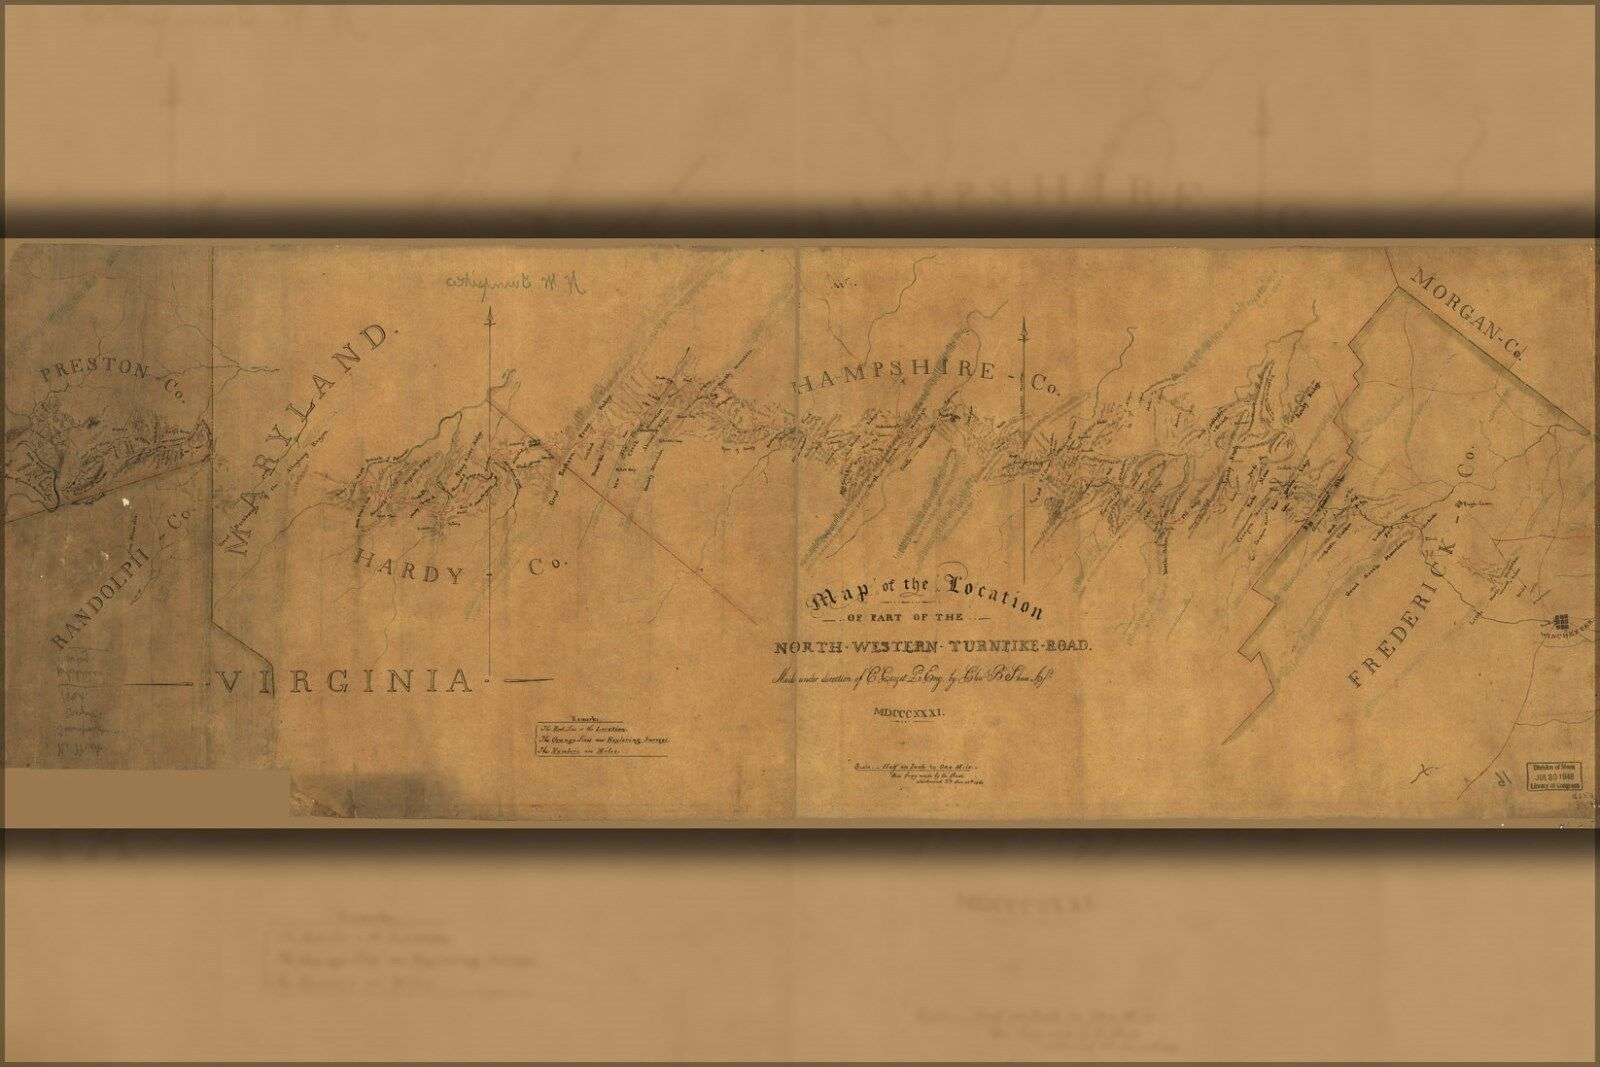 Poster, Molte Misure; Mappa Del NW Turnpike 1831 Strada via Maryland Virginia 1831 Turnpike d2b4d5